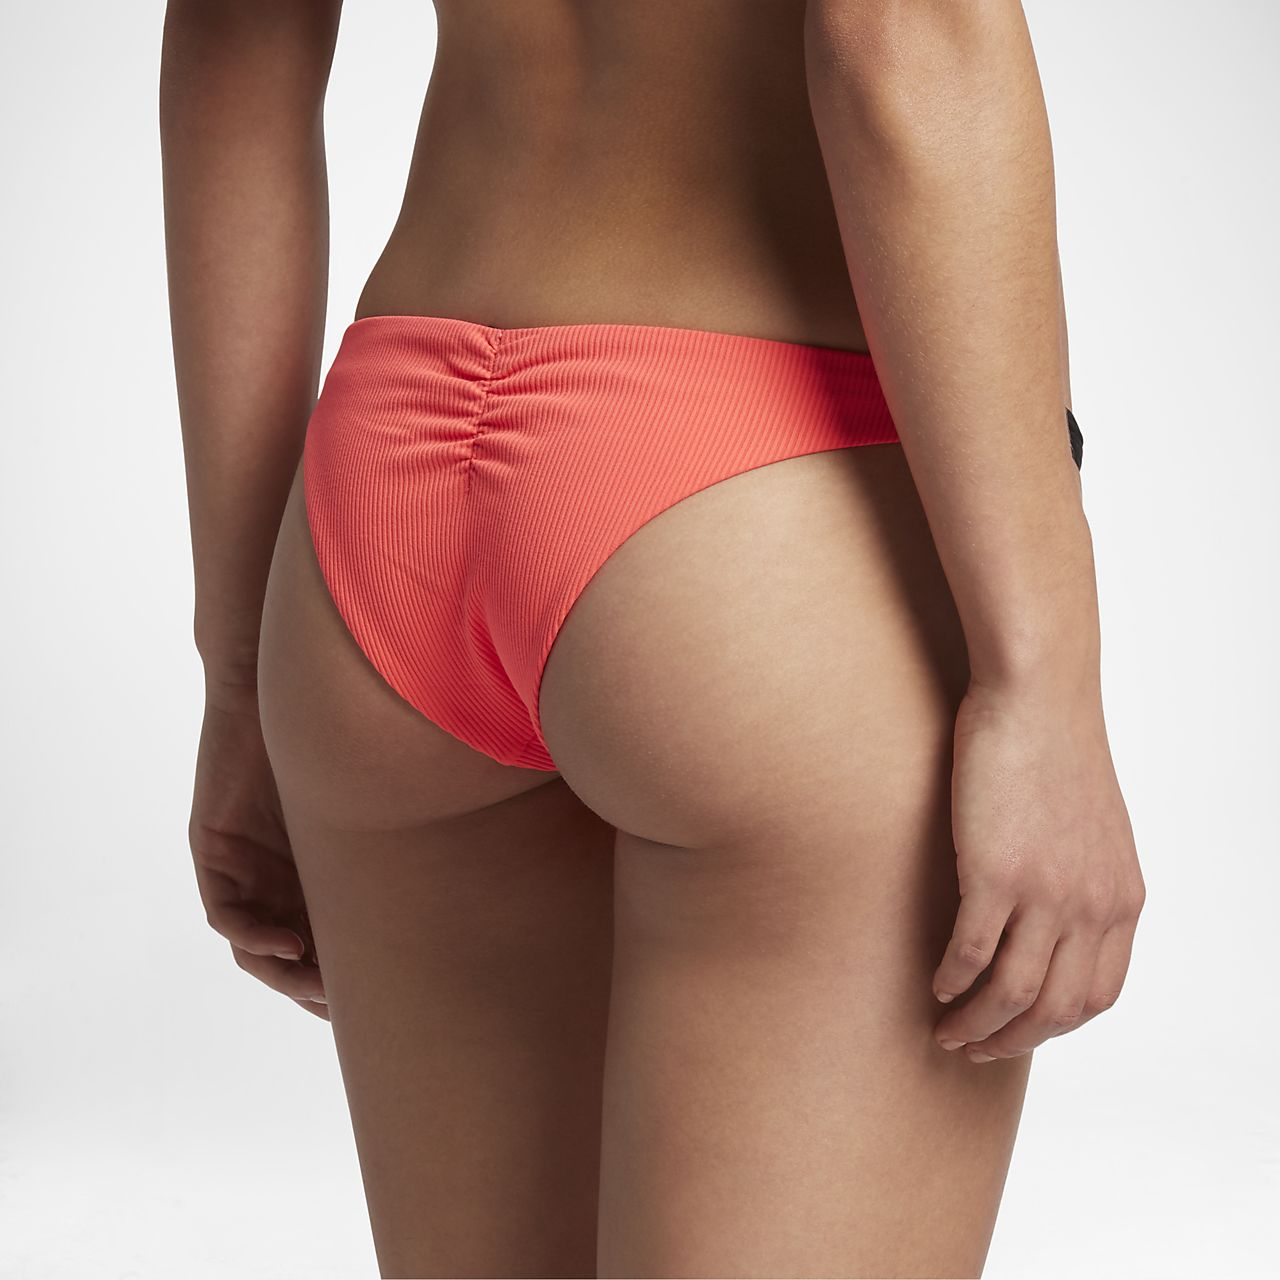 ... Hurley Quick Dry Cheeky Women's Surf Bottoms